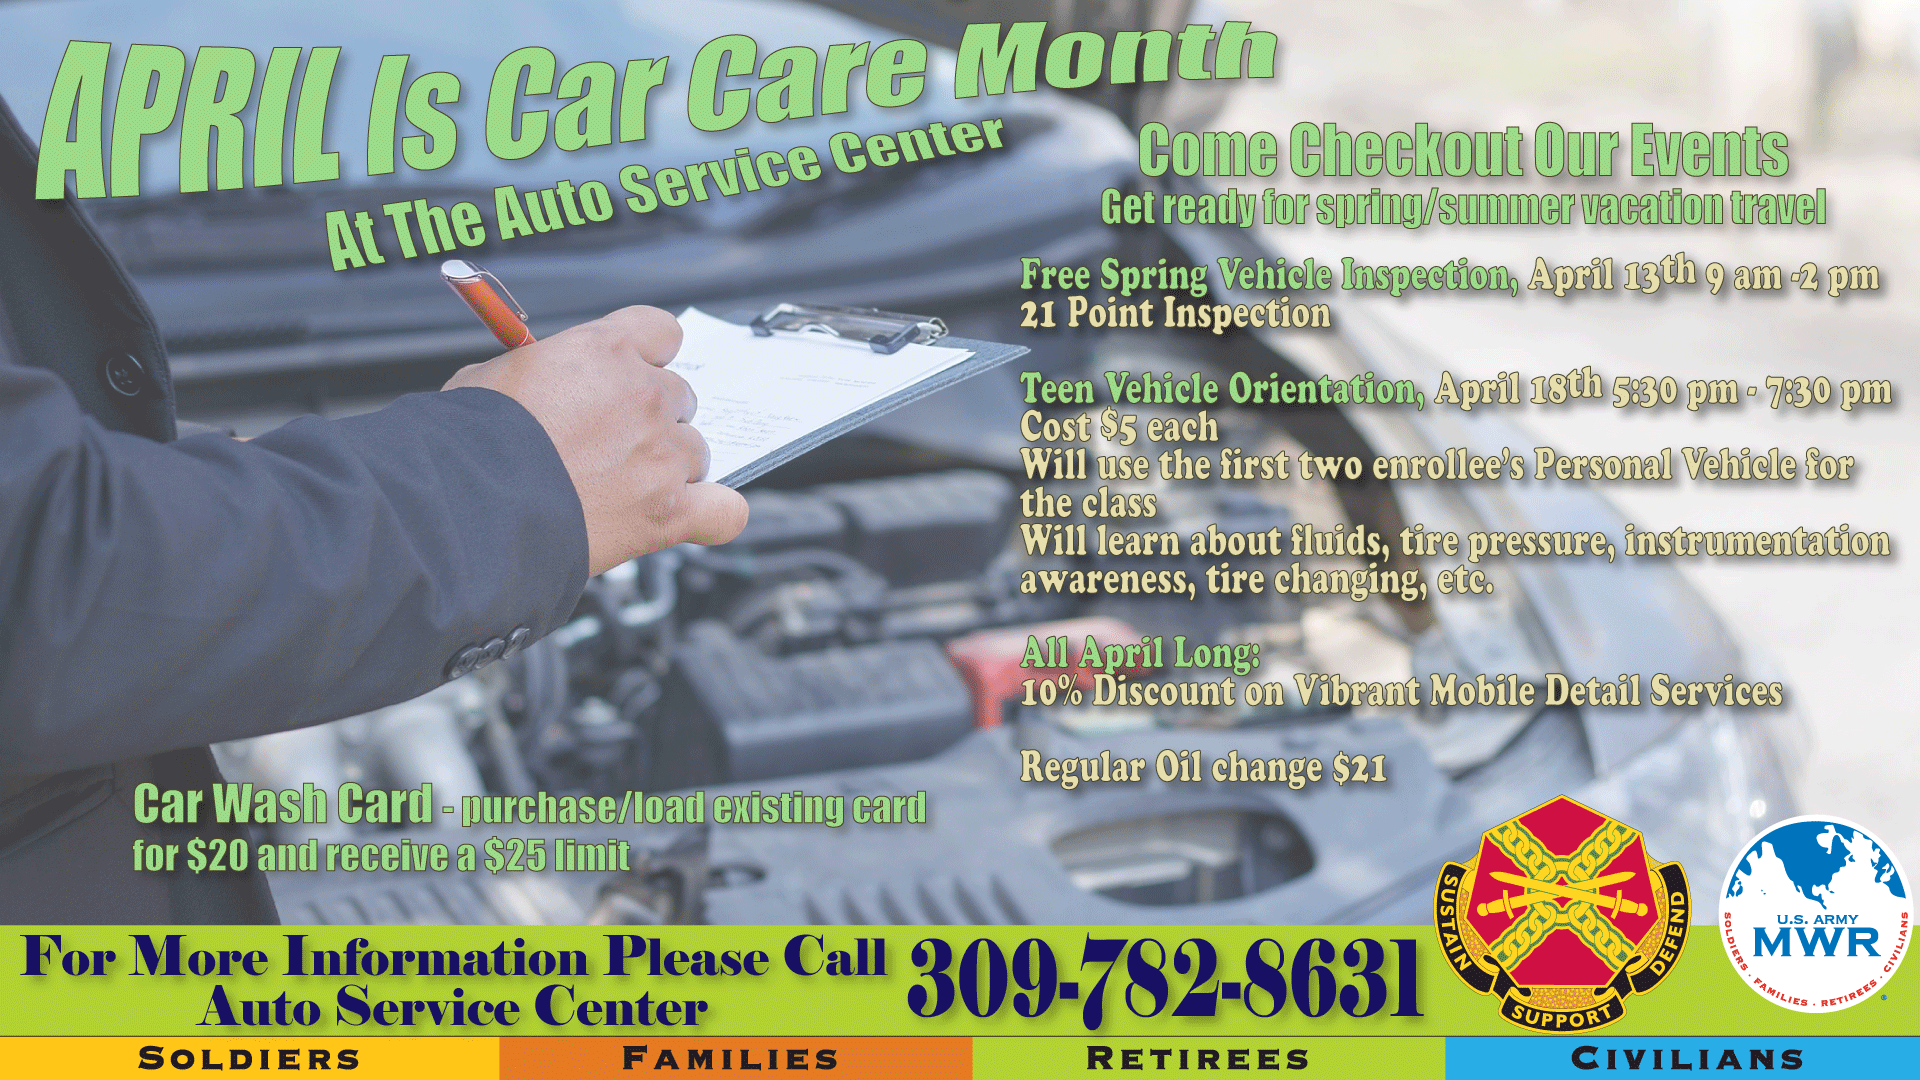 Spring Car Care Month